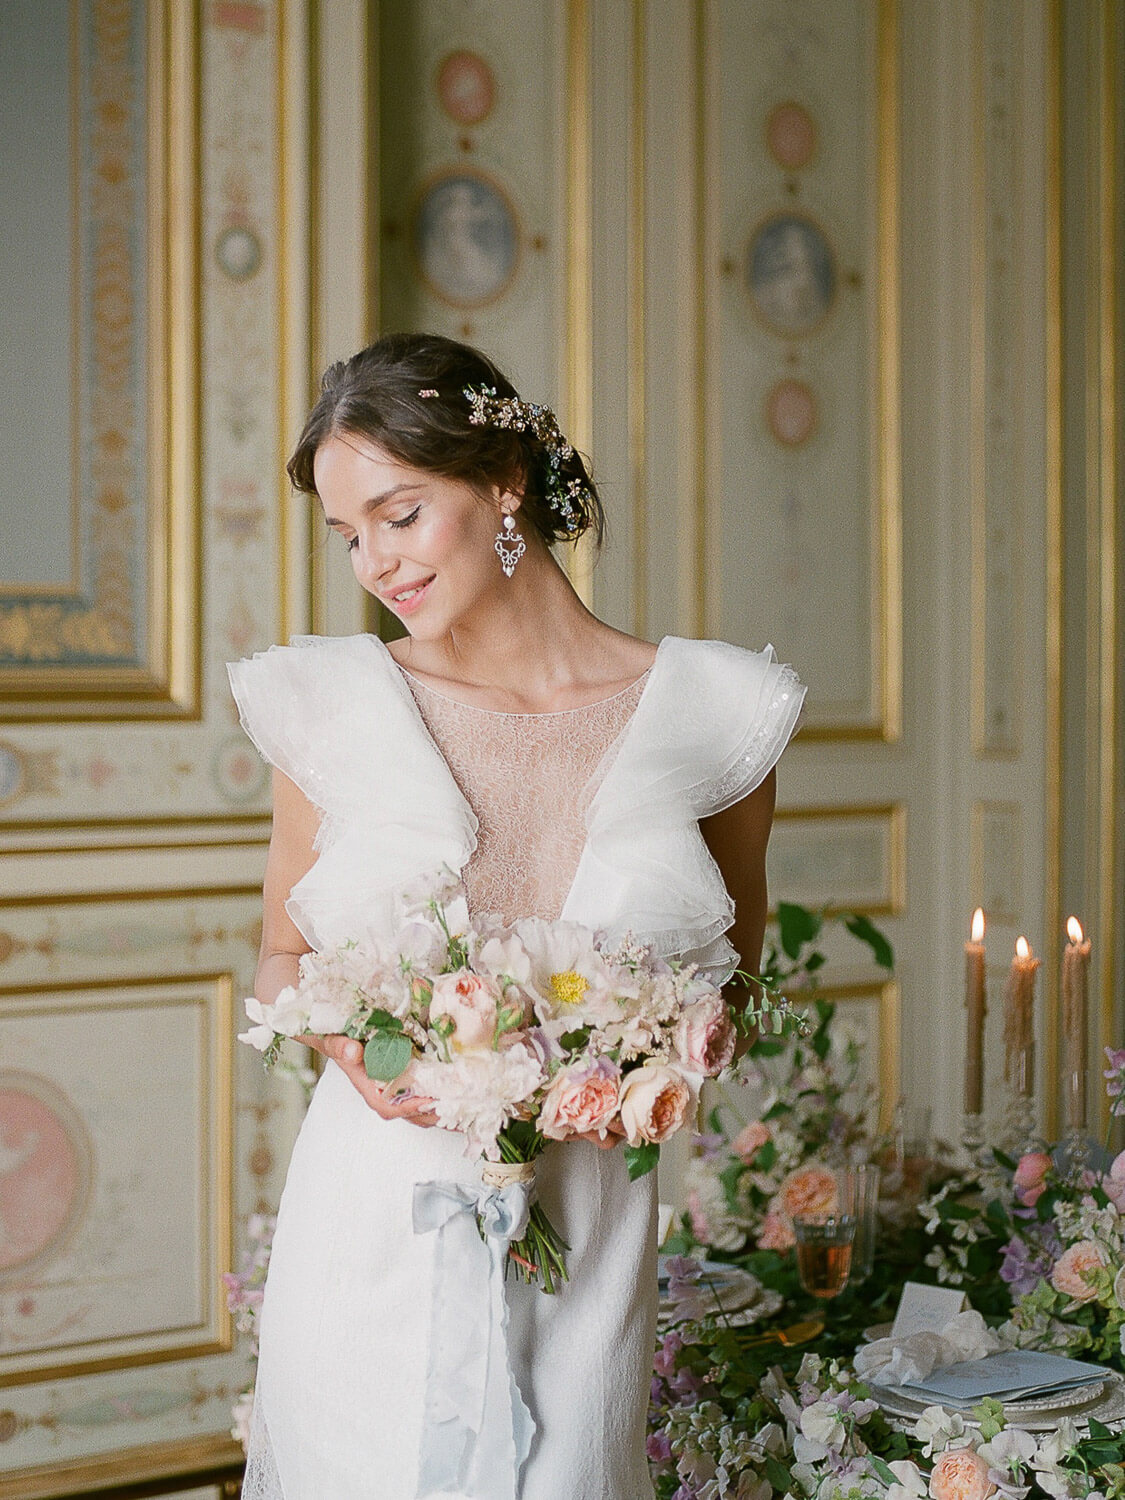 Fashionable bride holding bridal bouquet at Paris Palace by Portugal Wedding Photographer